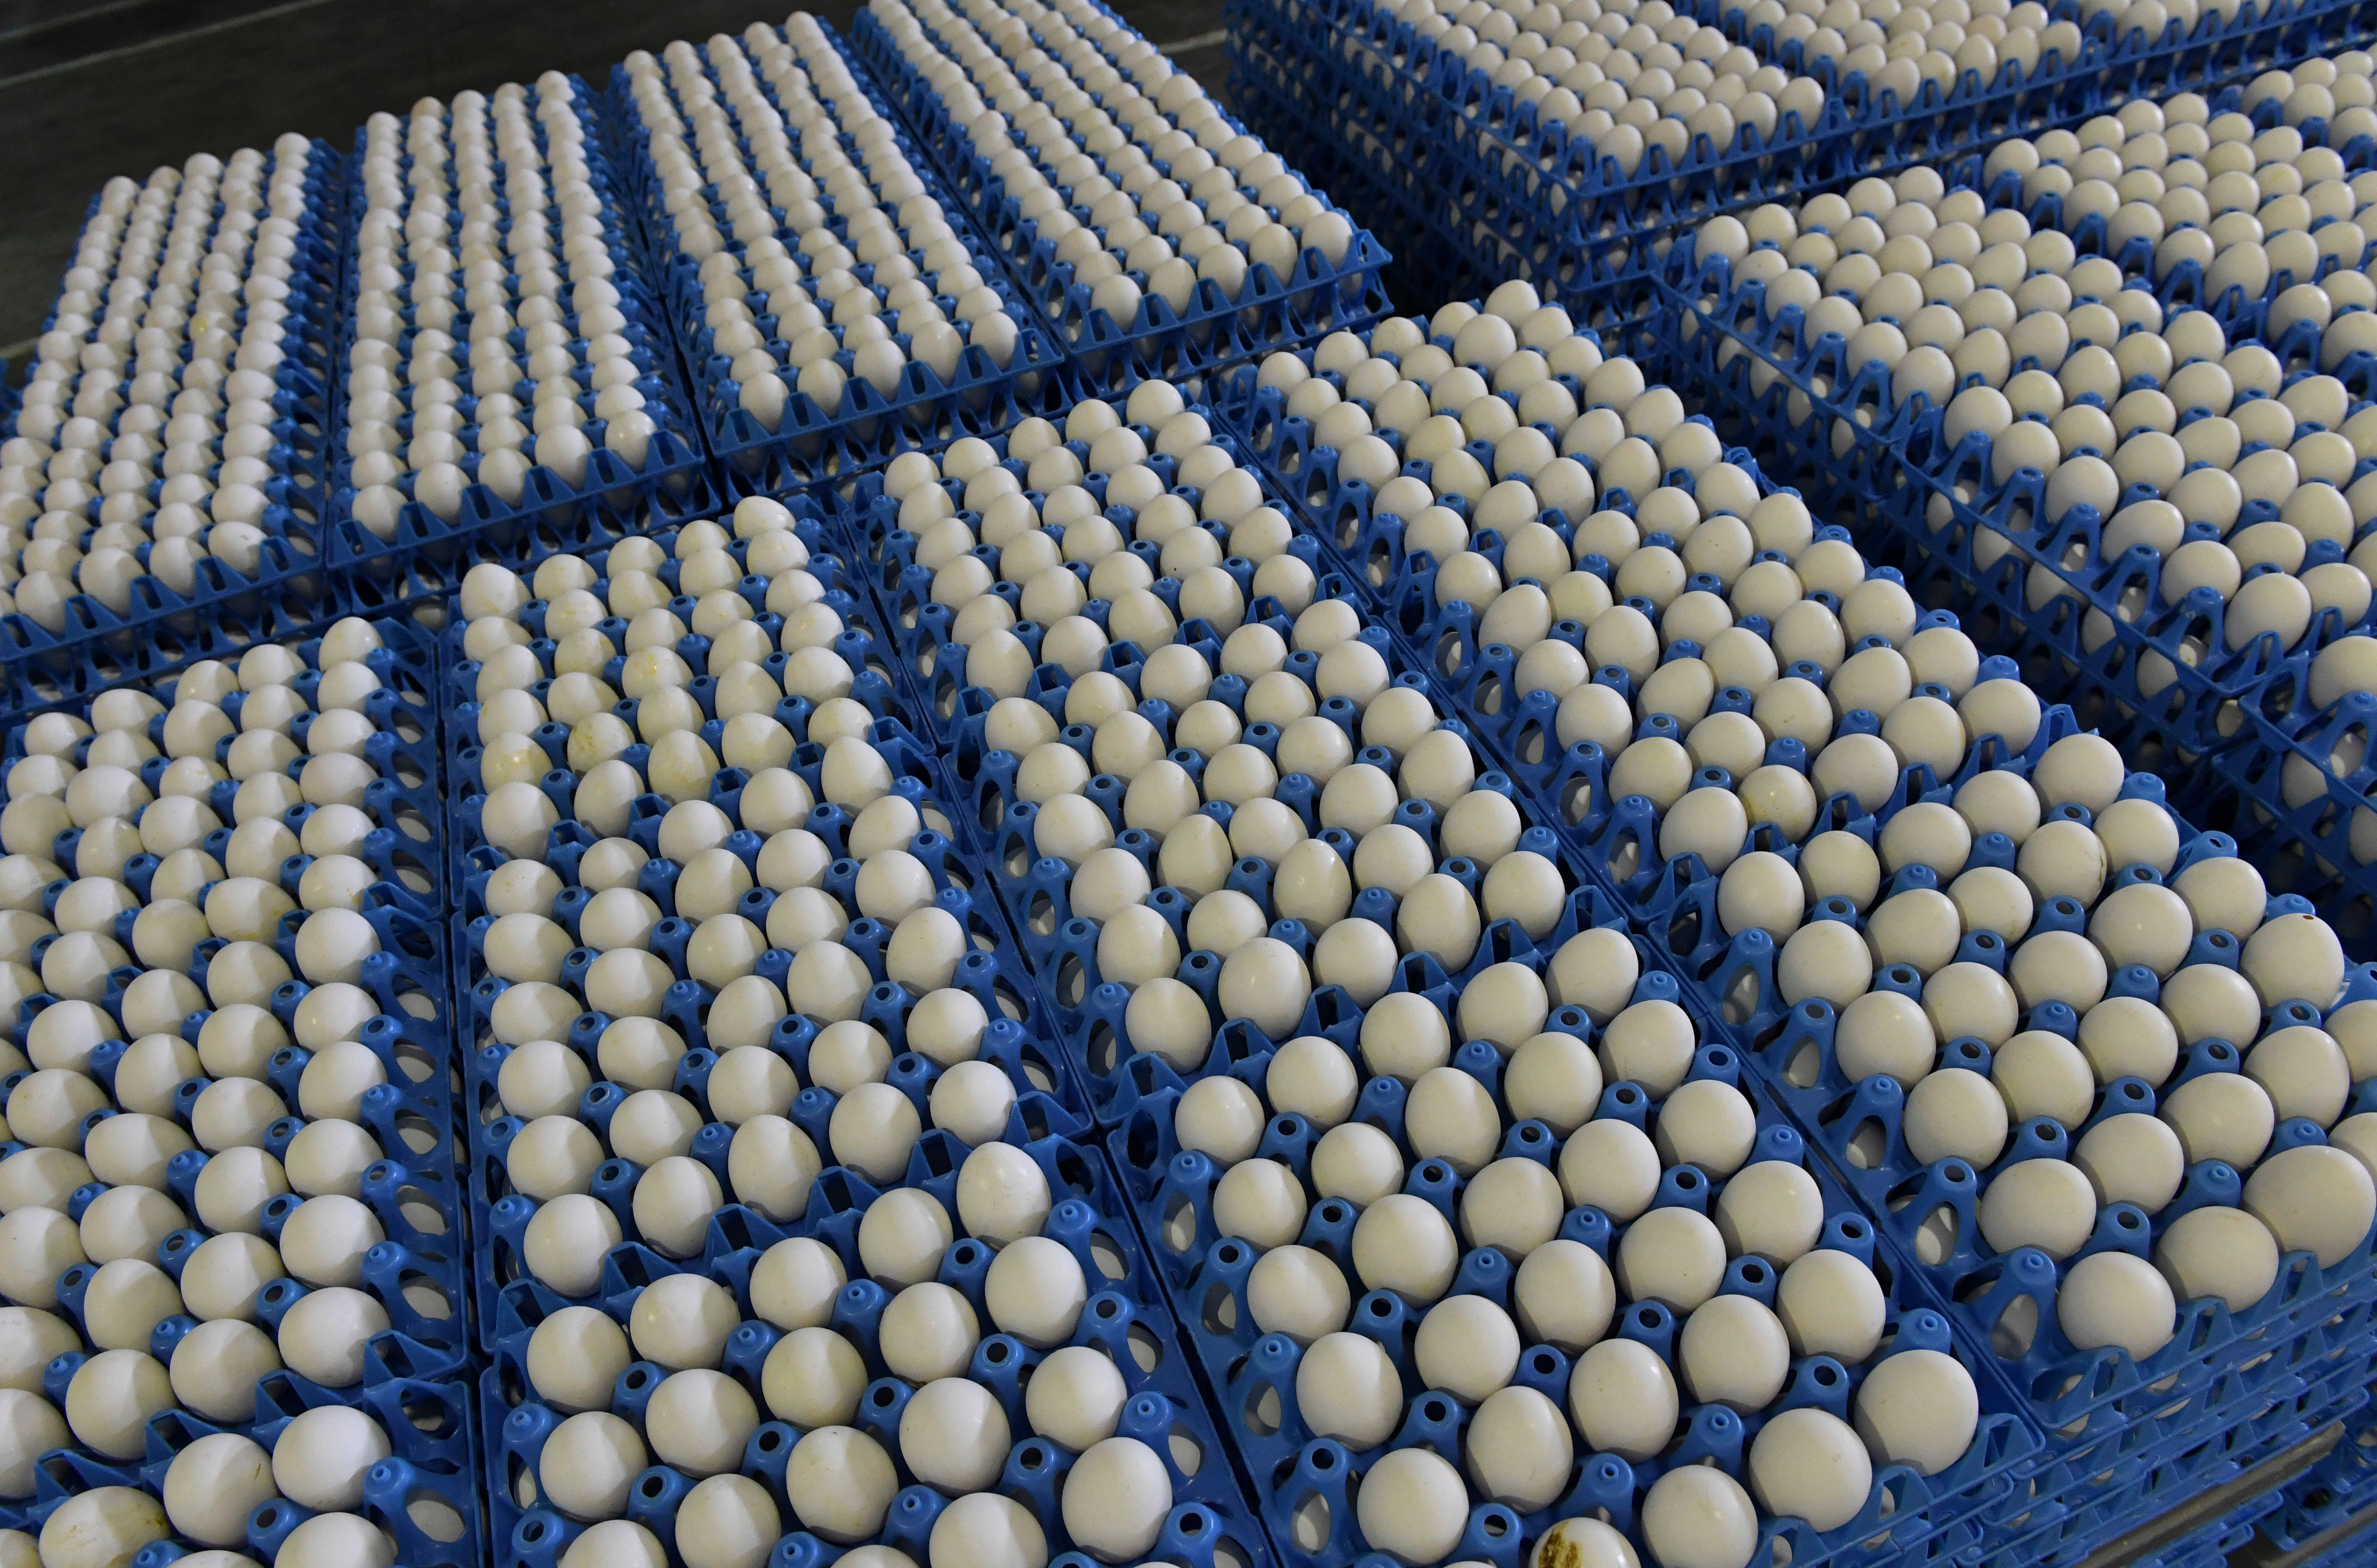 Chicken eggs are pictured at a facility in Costestii din Vale village ON August 11, 2017. One tonne of egg yolk liquid contaminated with the insecticide fipronil has been found in Romania, the first discovery in eastern Europe since the tainted egg scandal erupted, the veterinary health authority said Thursday. / AFP PHOTO / Daniel MIHAILESCU        (Photo credit should read DANIEL MIHAILESCU/AFP/Getty Images)